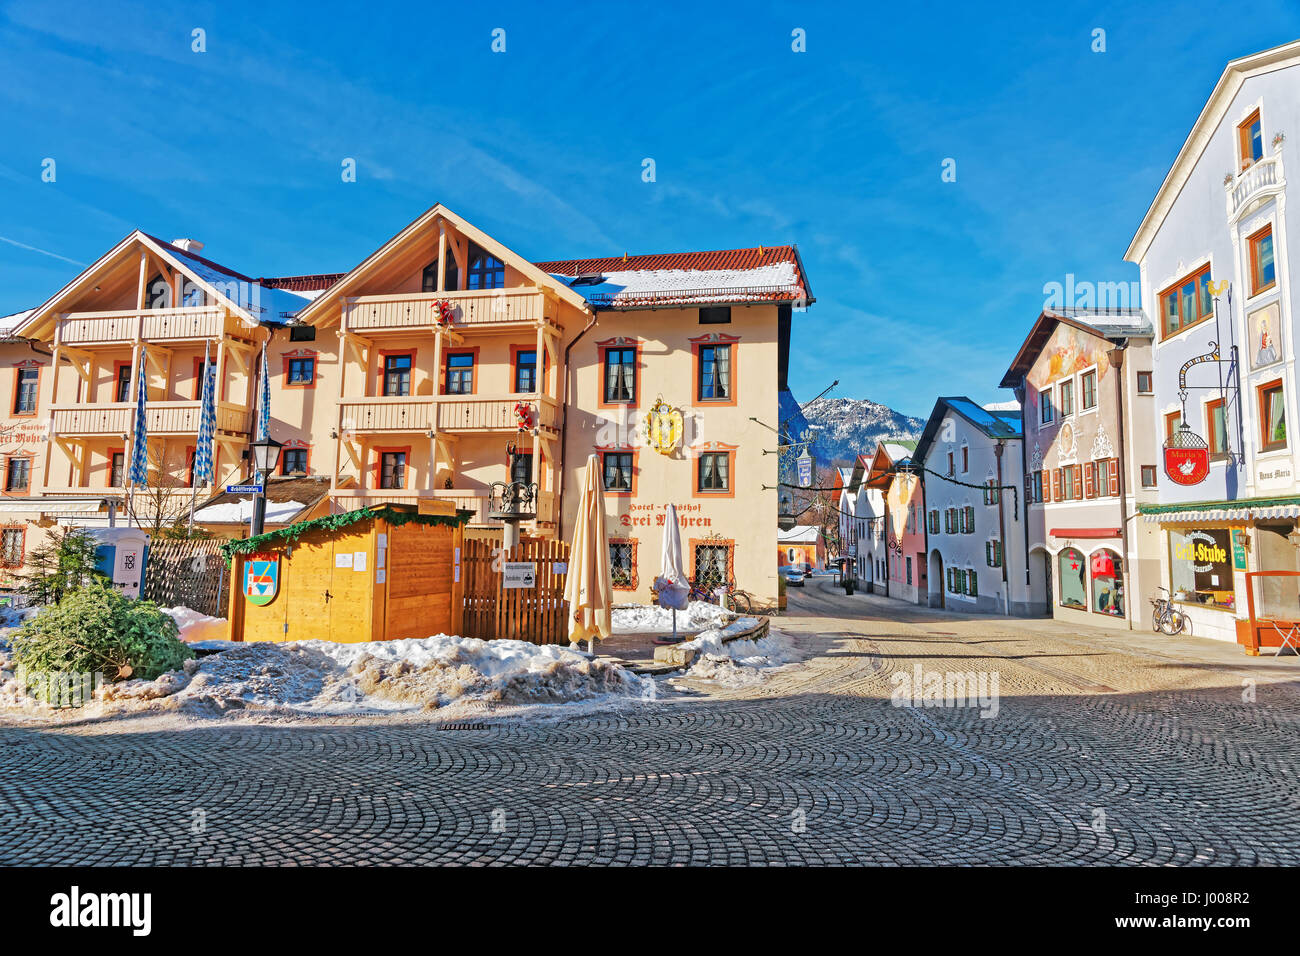 street view in garmisch partenkirchen germany stockfotos. Black Bedroom Furniture Sets. Home Design Ideas